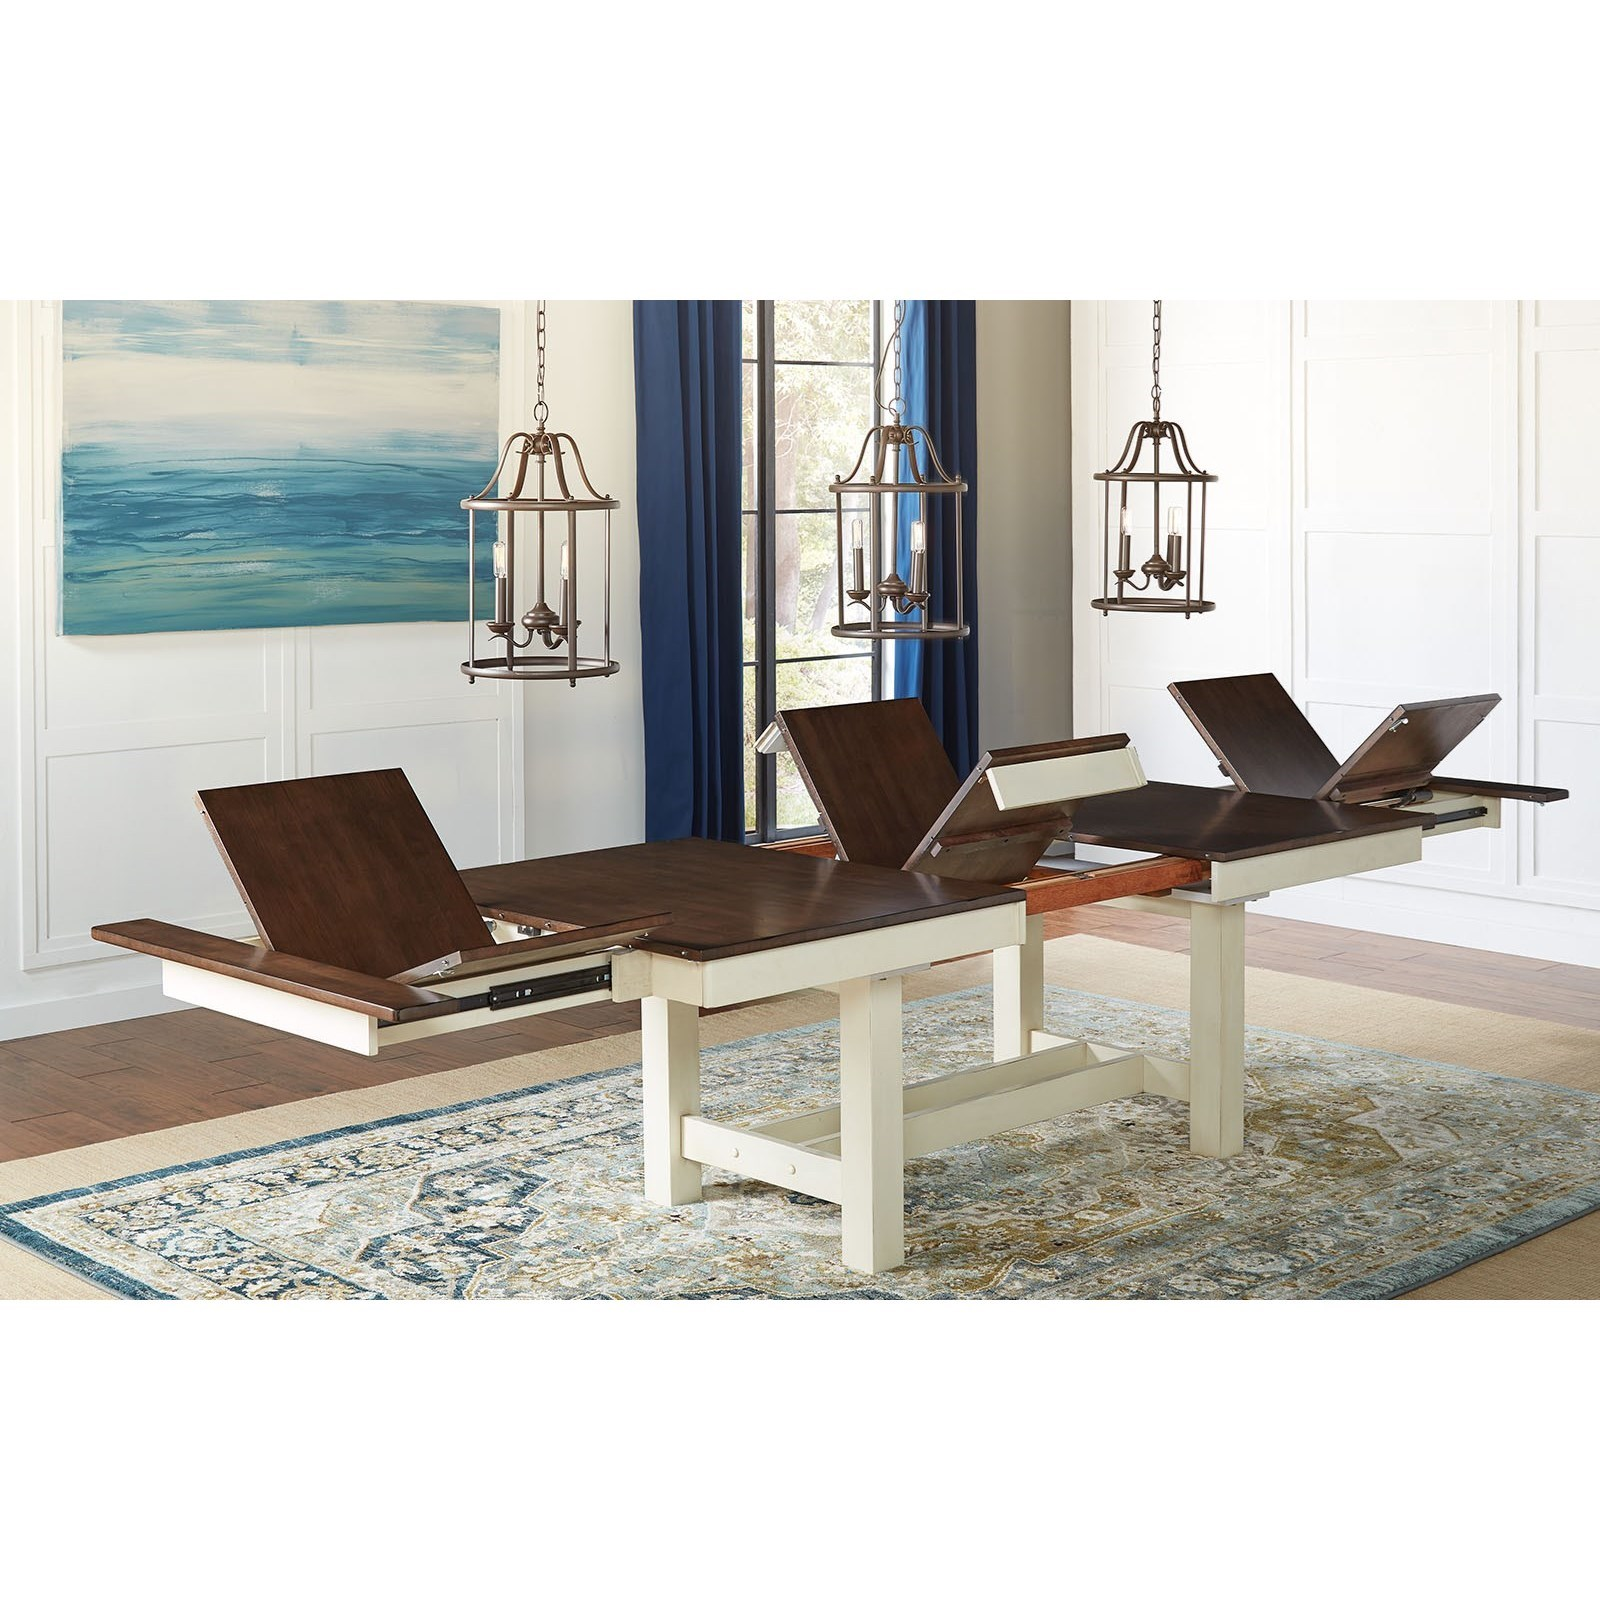 Mariposa Trestle Table by A-A at Walker's Furniture